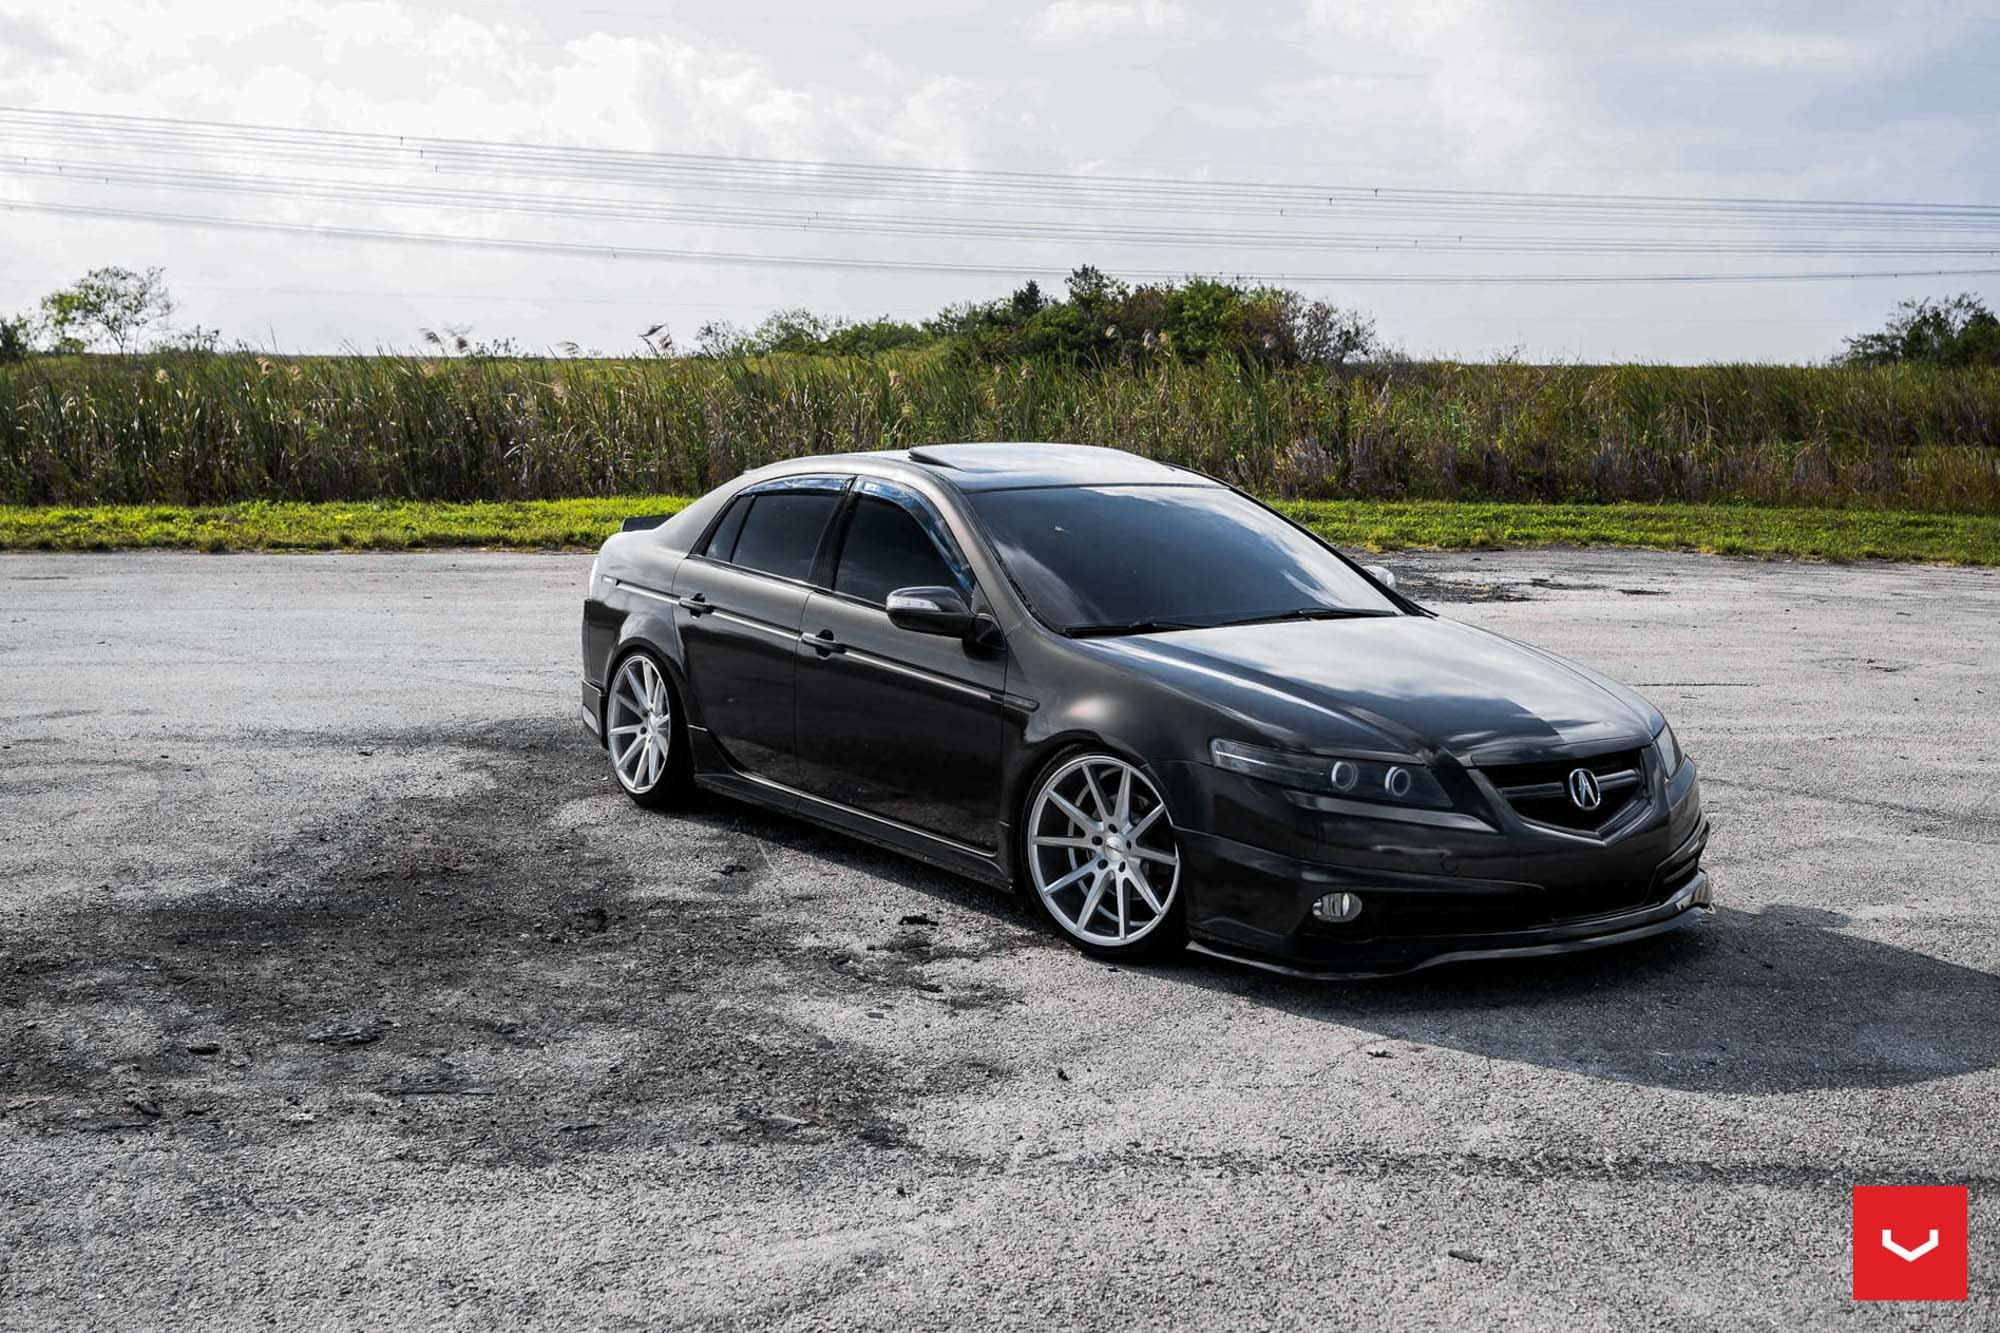 Stanced Acura TL With A Front Bumper Lip By Vossen Wheels CARiD - 2004 acura tl front lip